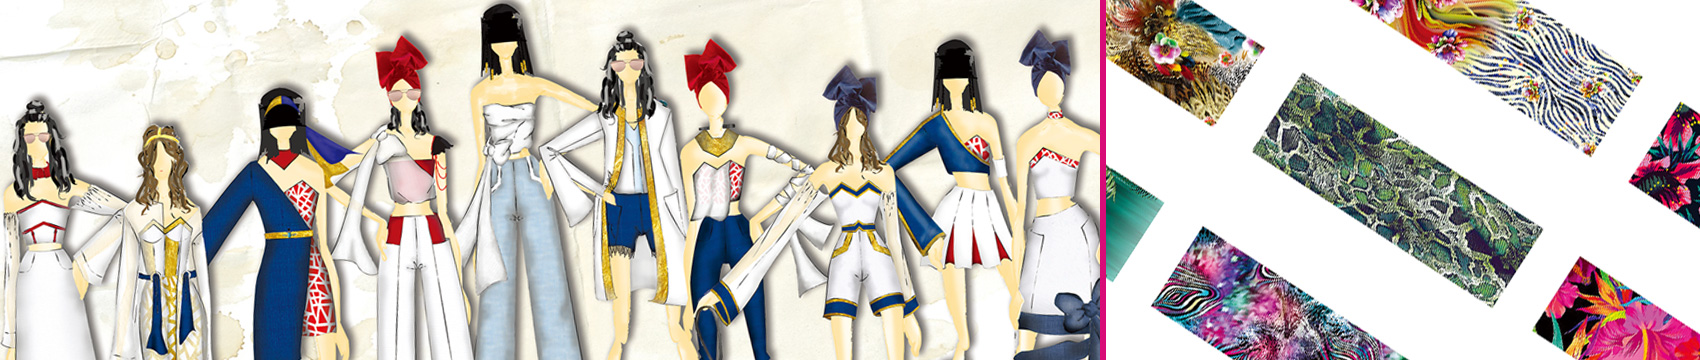 Fashion Design Classes In Florence Italy